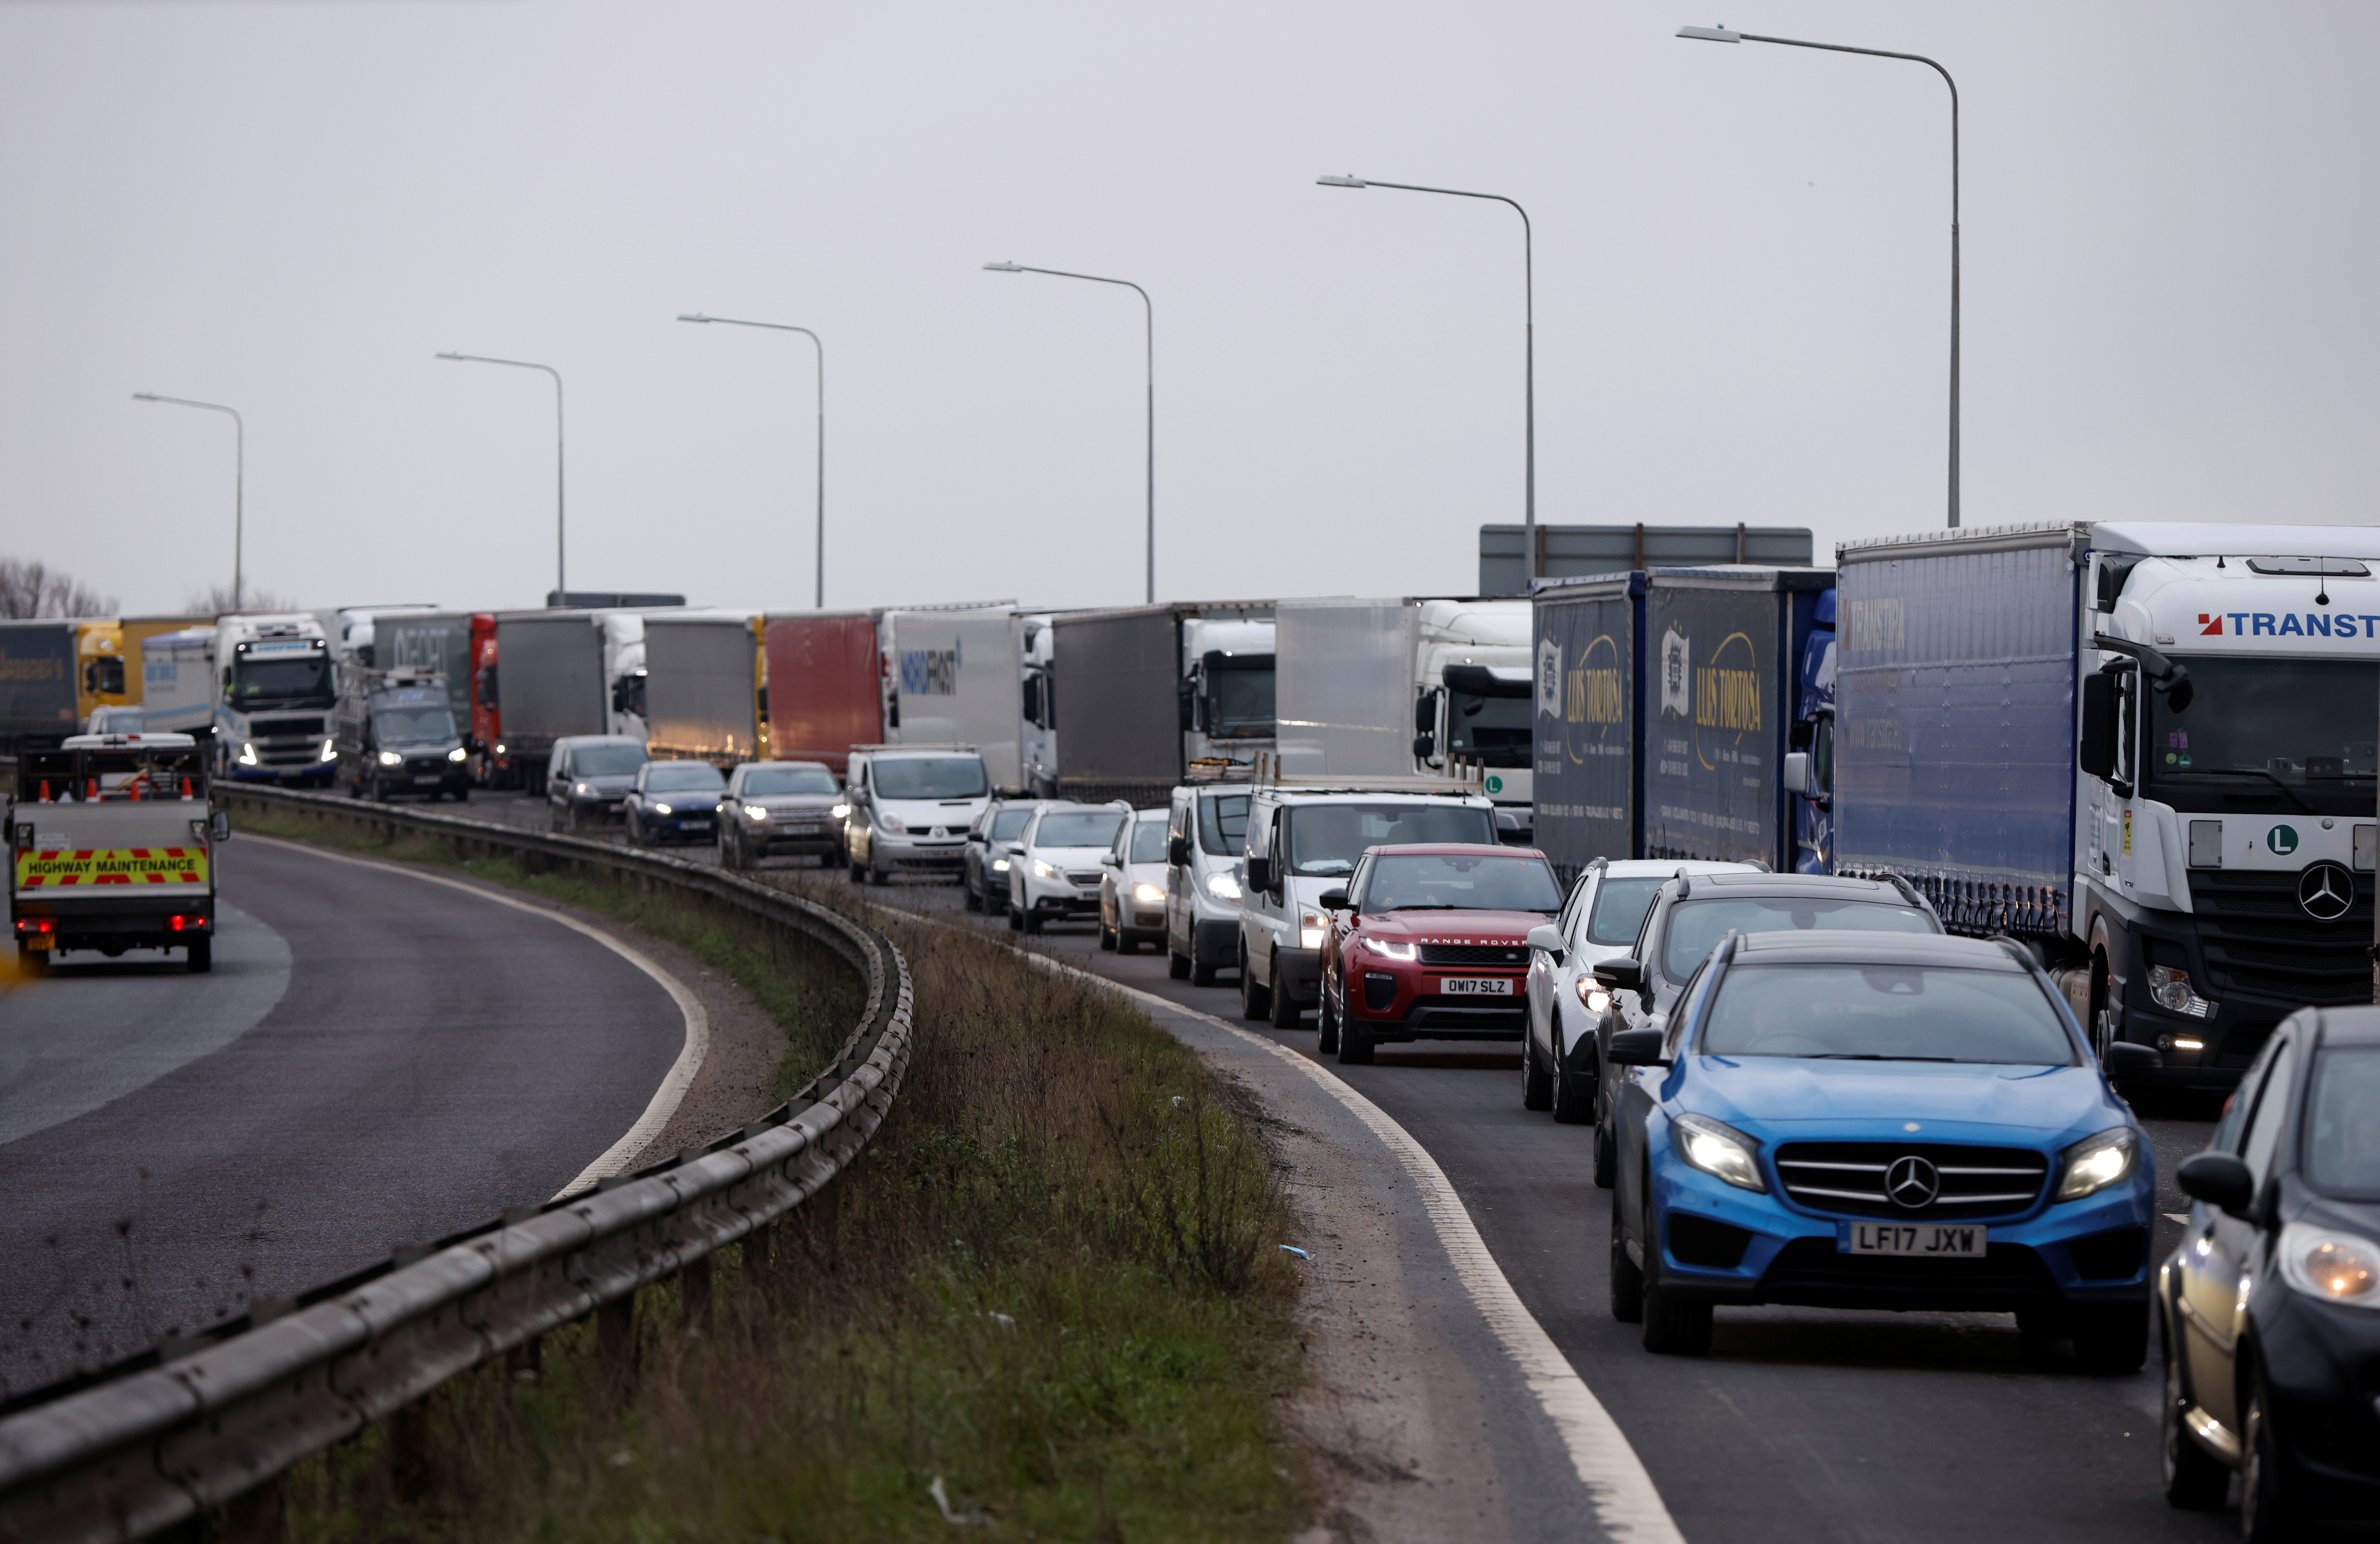 Trucks queue on the road leading to the Waterbrook Inland Border Facility, a temporary customs clearance centre set up in a truck stop in Ashford, Kent, Britain January 15, 2021. REUTERS/John Sibley